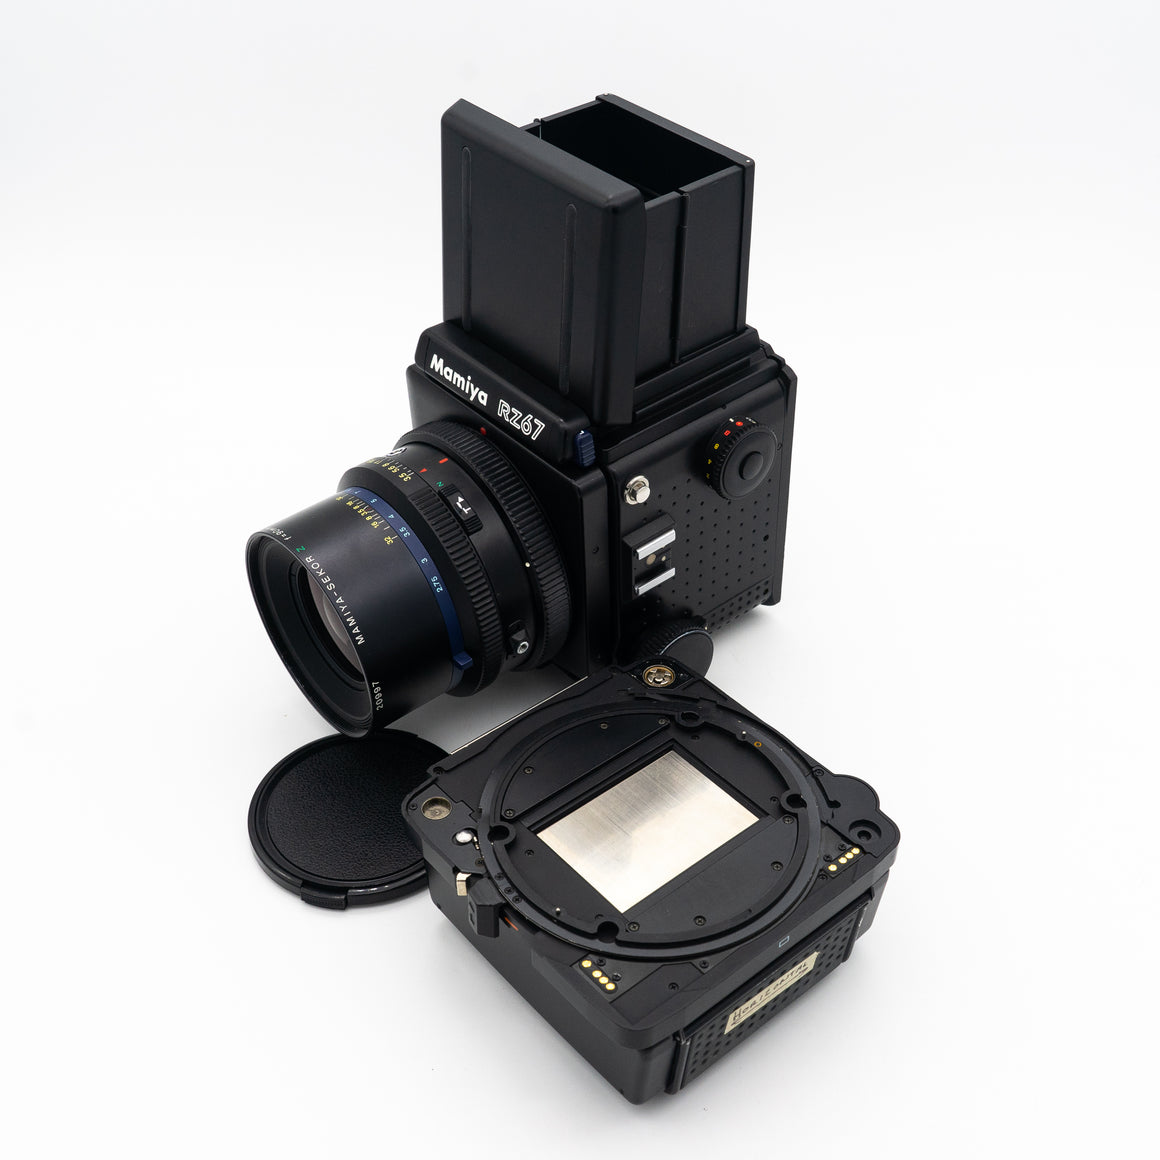 Mamiya RZ67 Medium Format Camera with Mamiya Sekor 90mm f/3.5 Lens